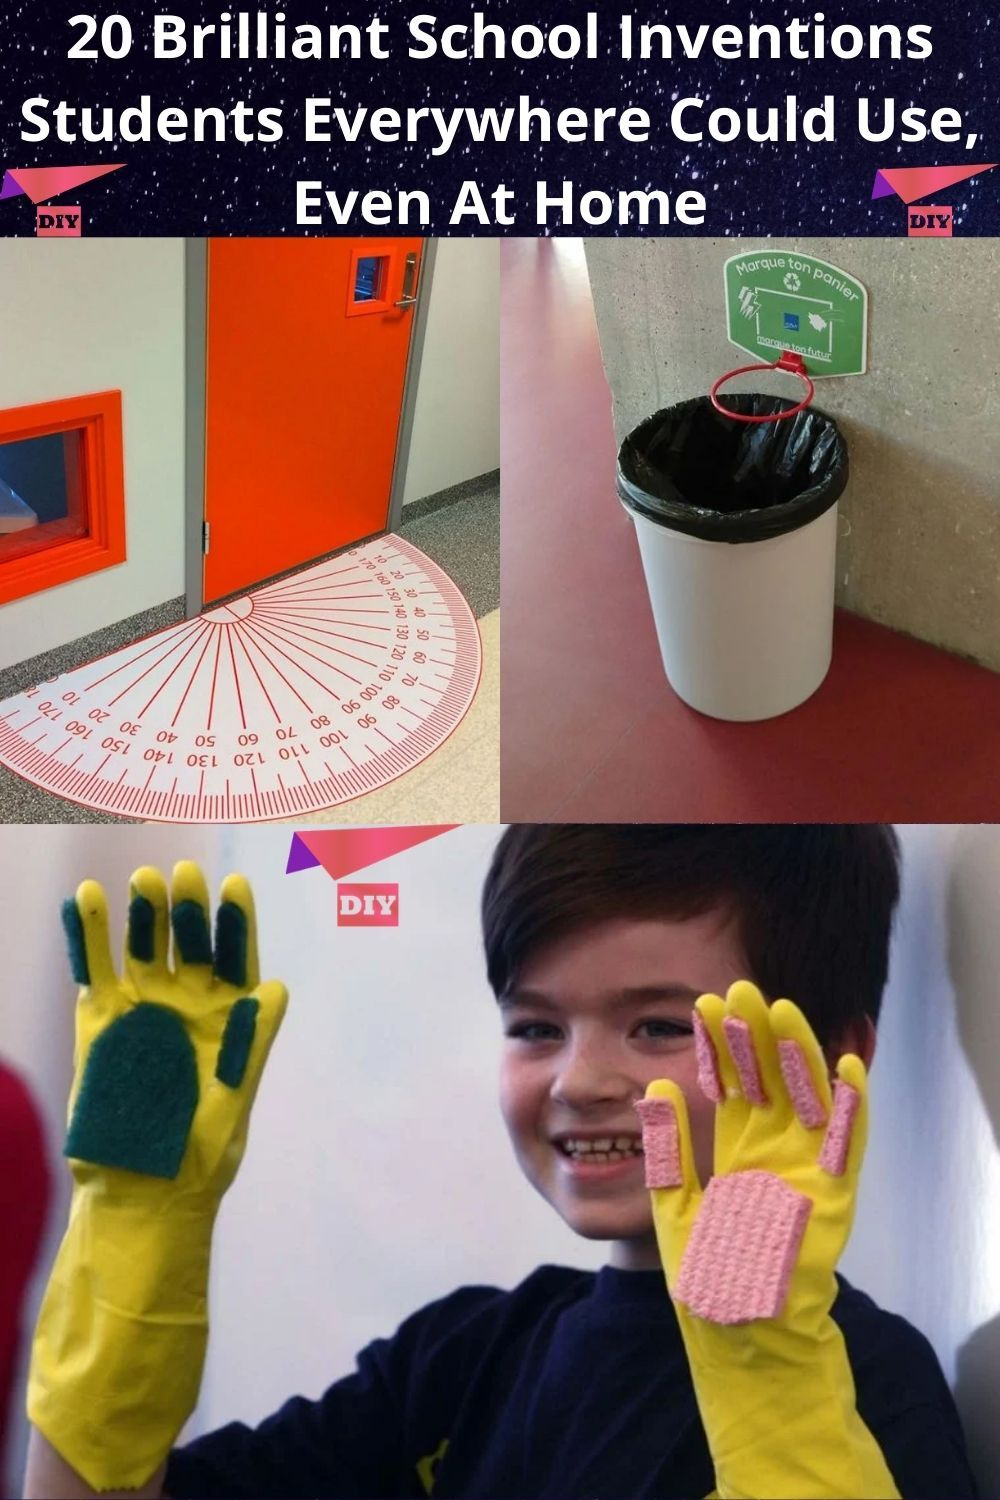 20 Brilliant school inventions students everywhere could